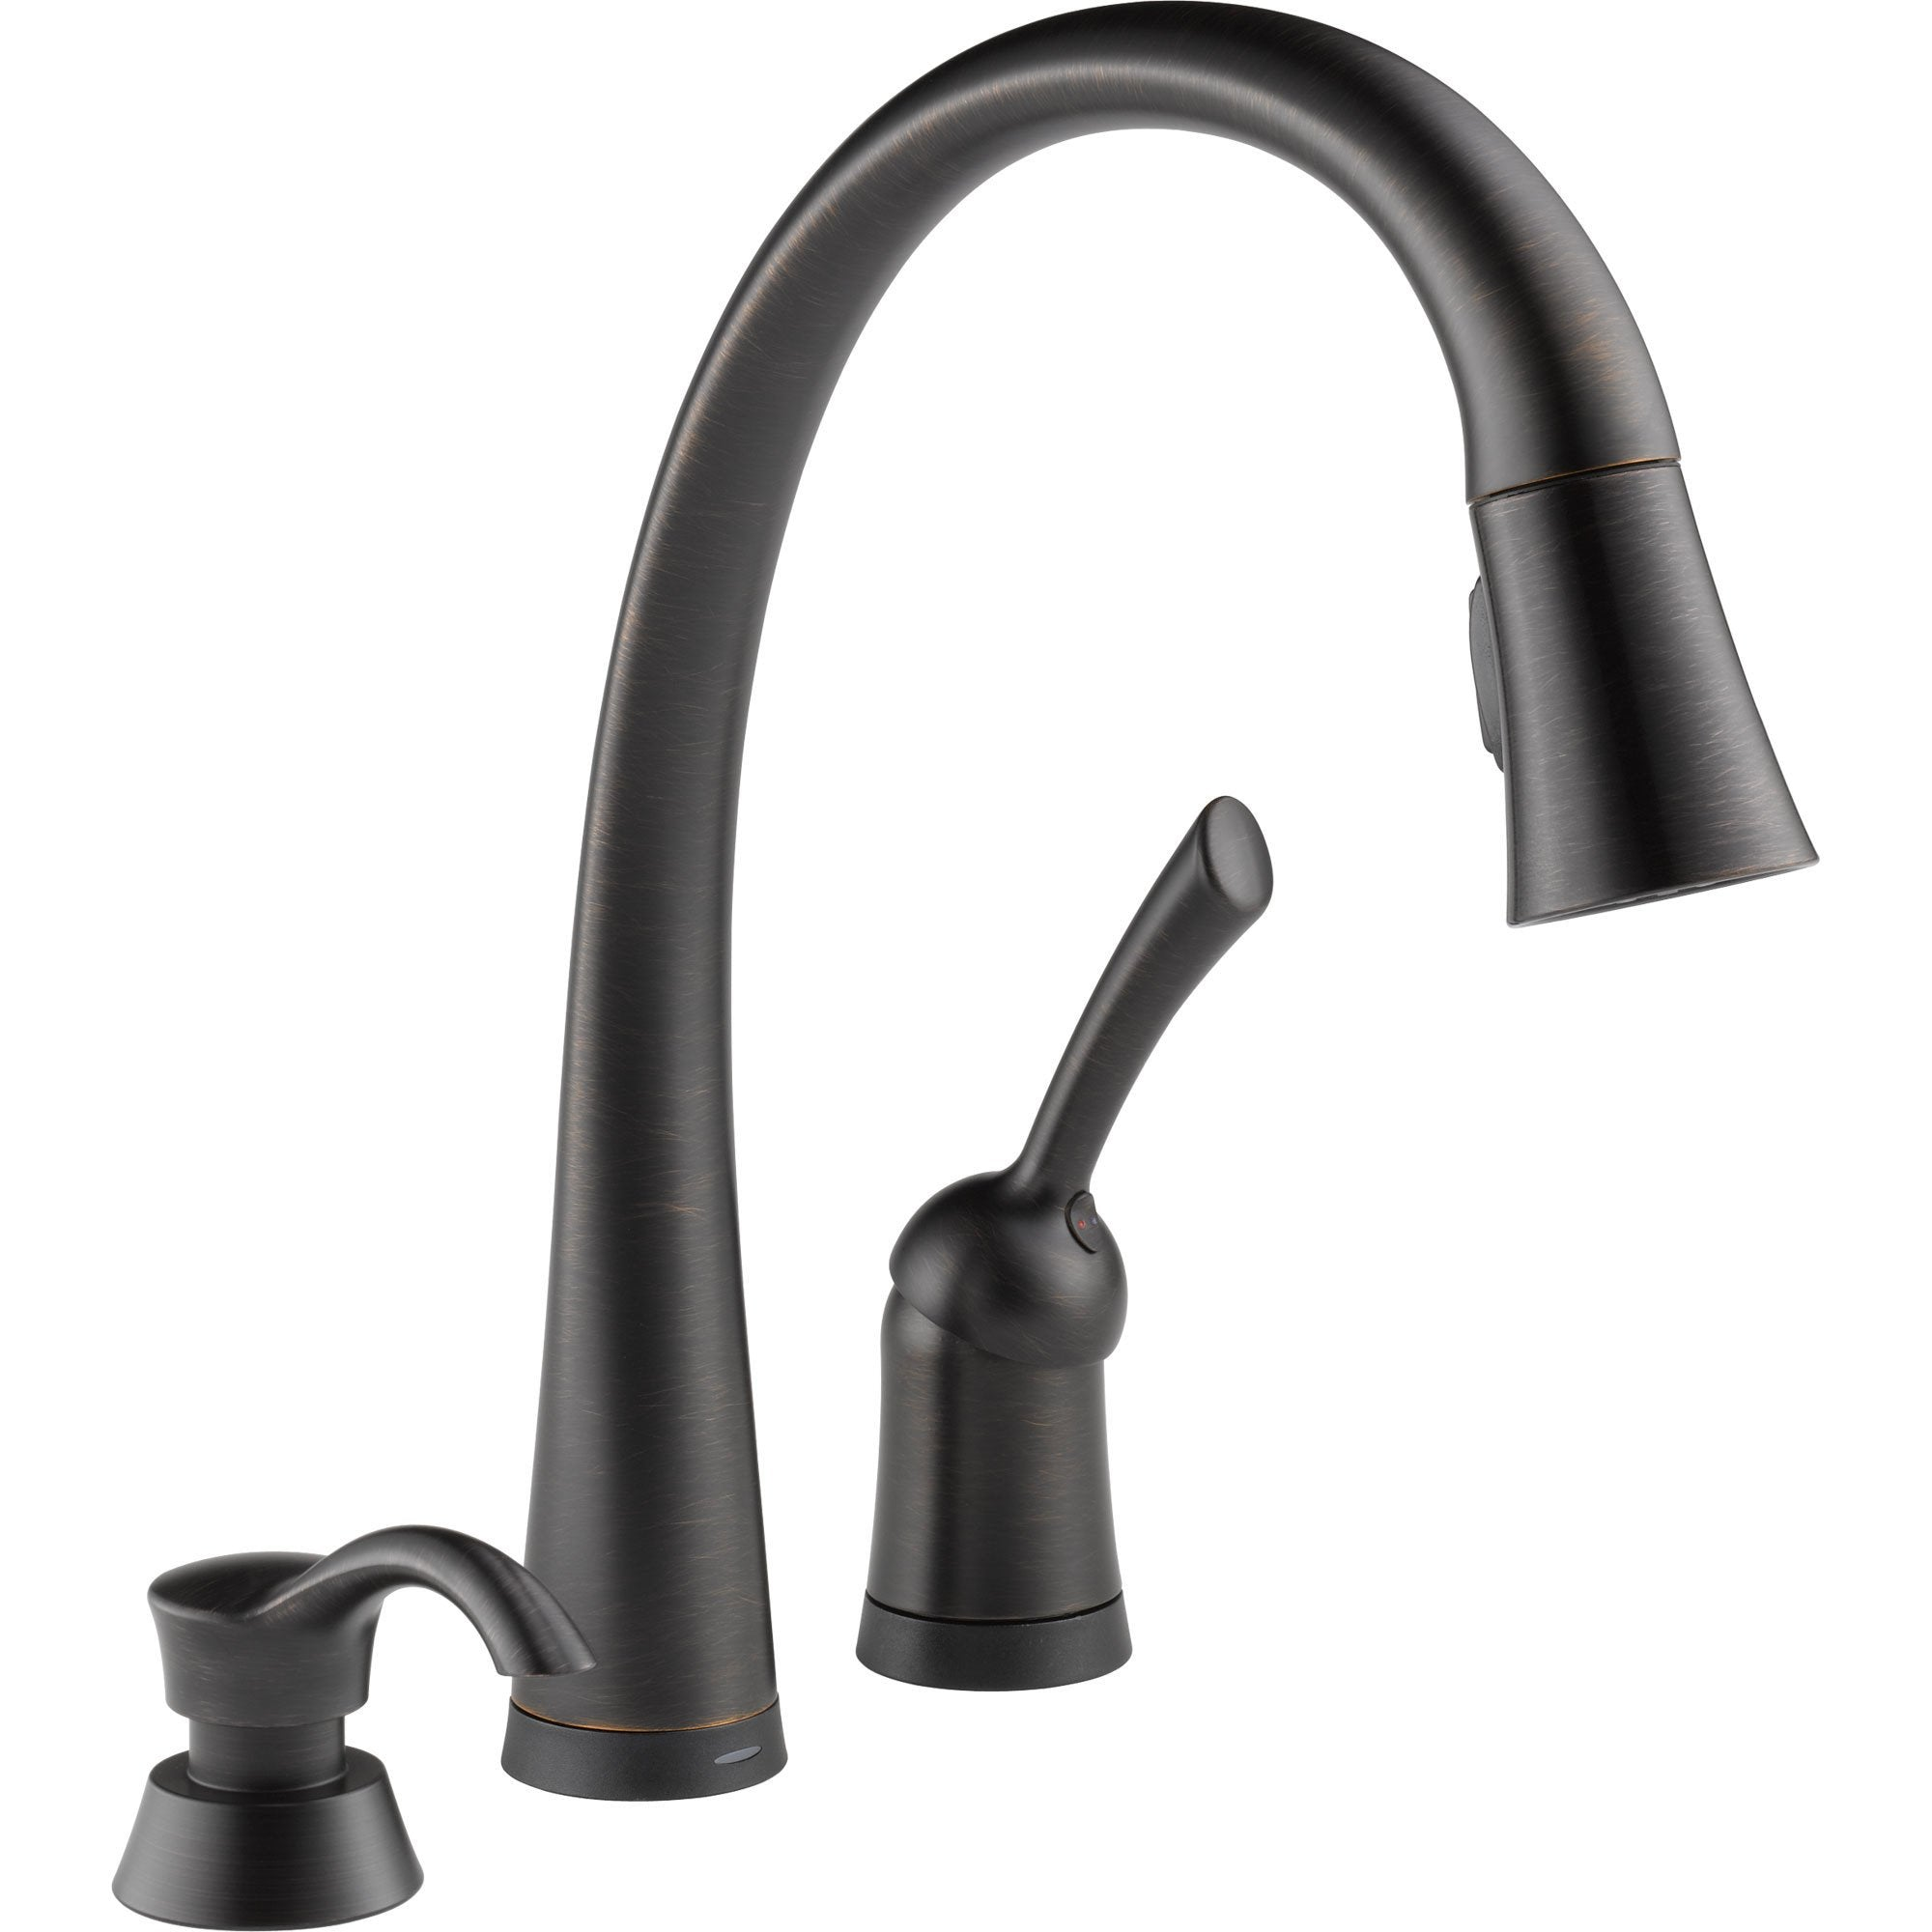 Delta Pilar Touch2O Venetian Bronze Pull-Down Sprayer Faucet w/Dispenser 608667